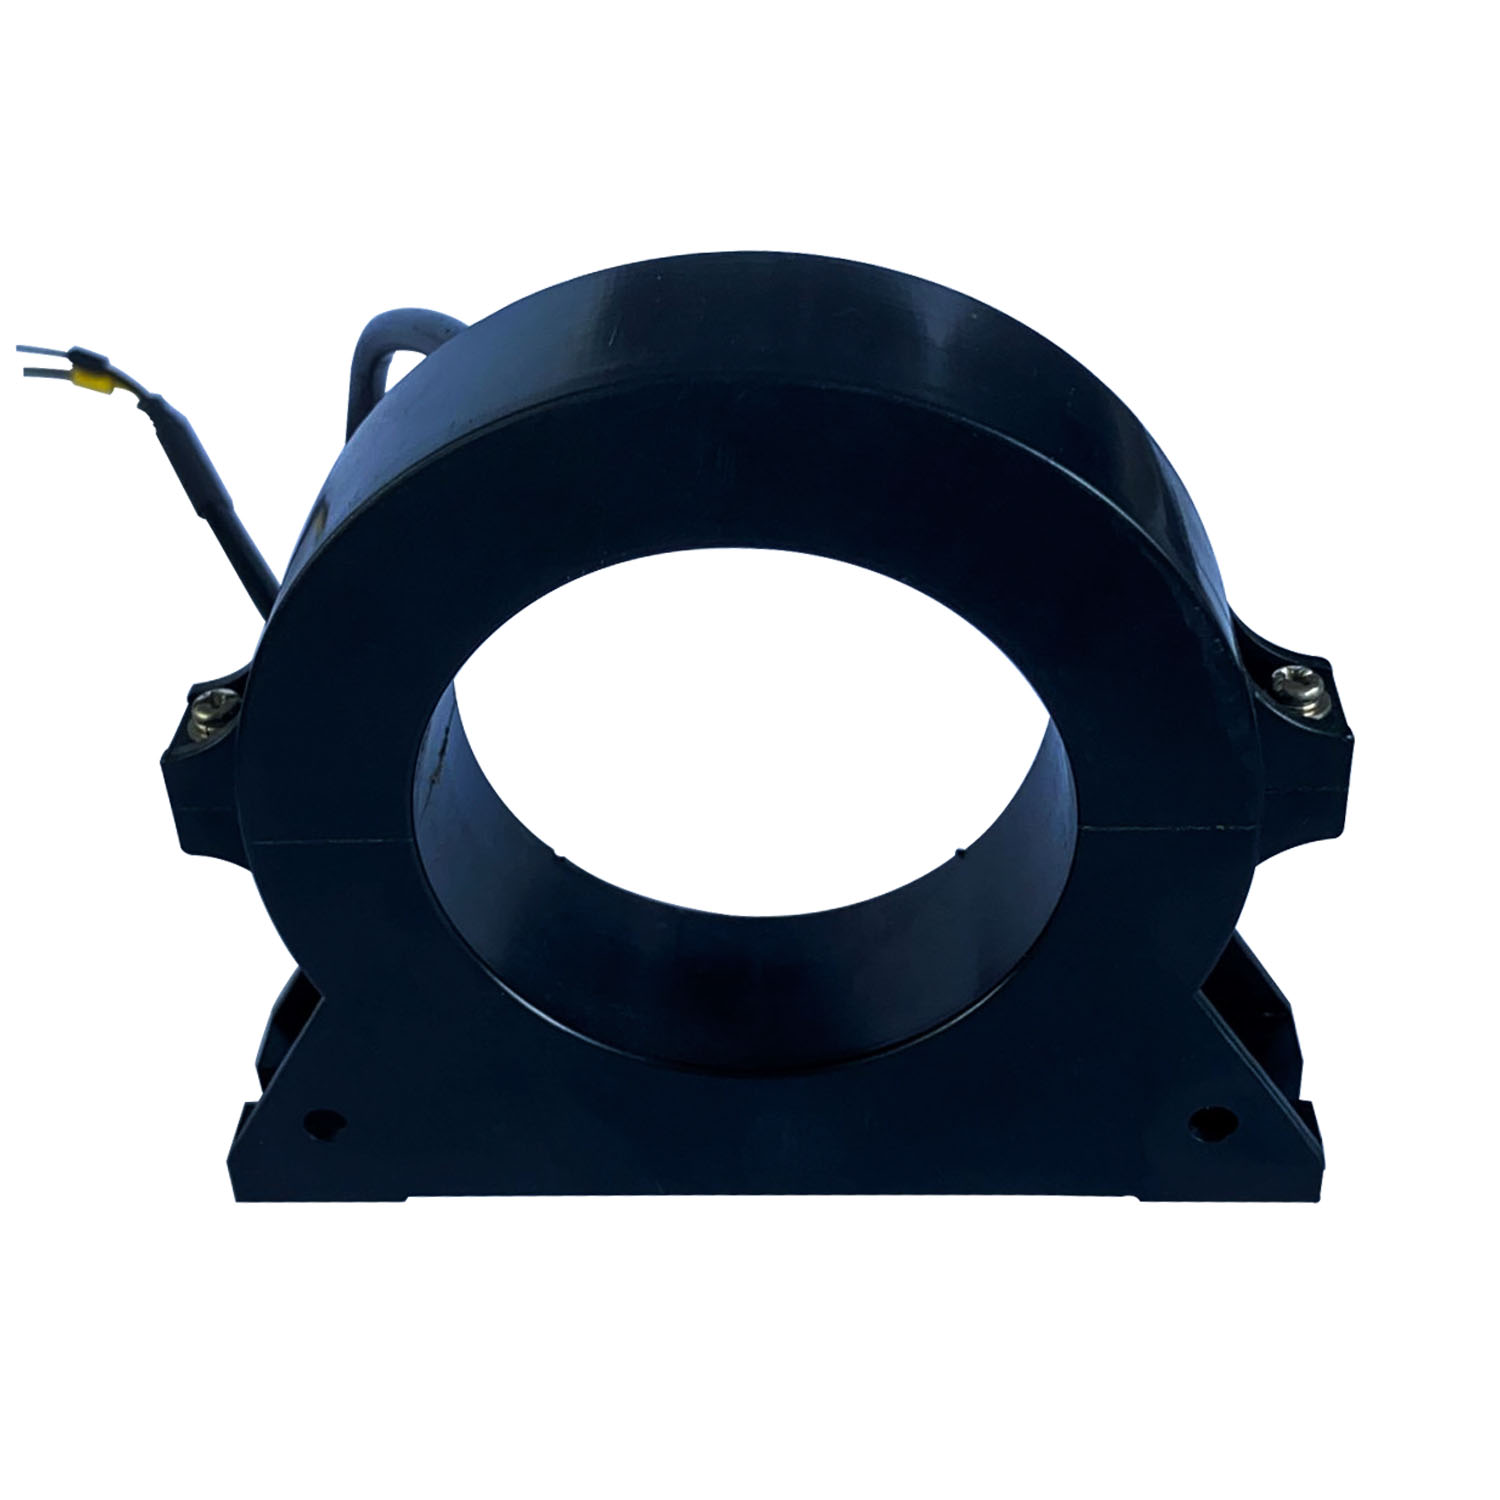 φ100mm split residual current transformer 2000:1